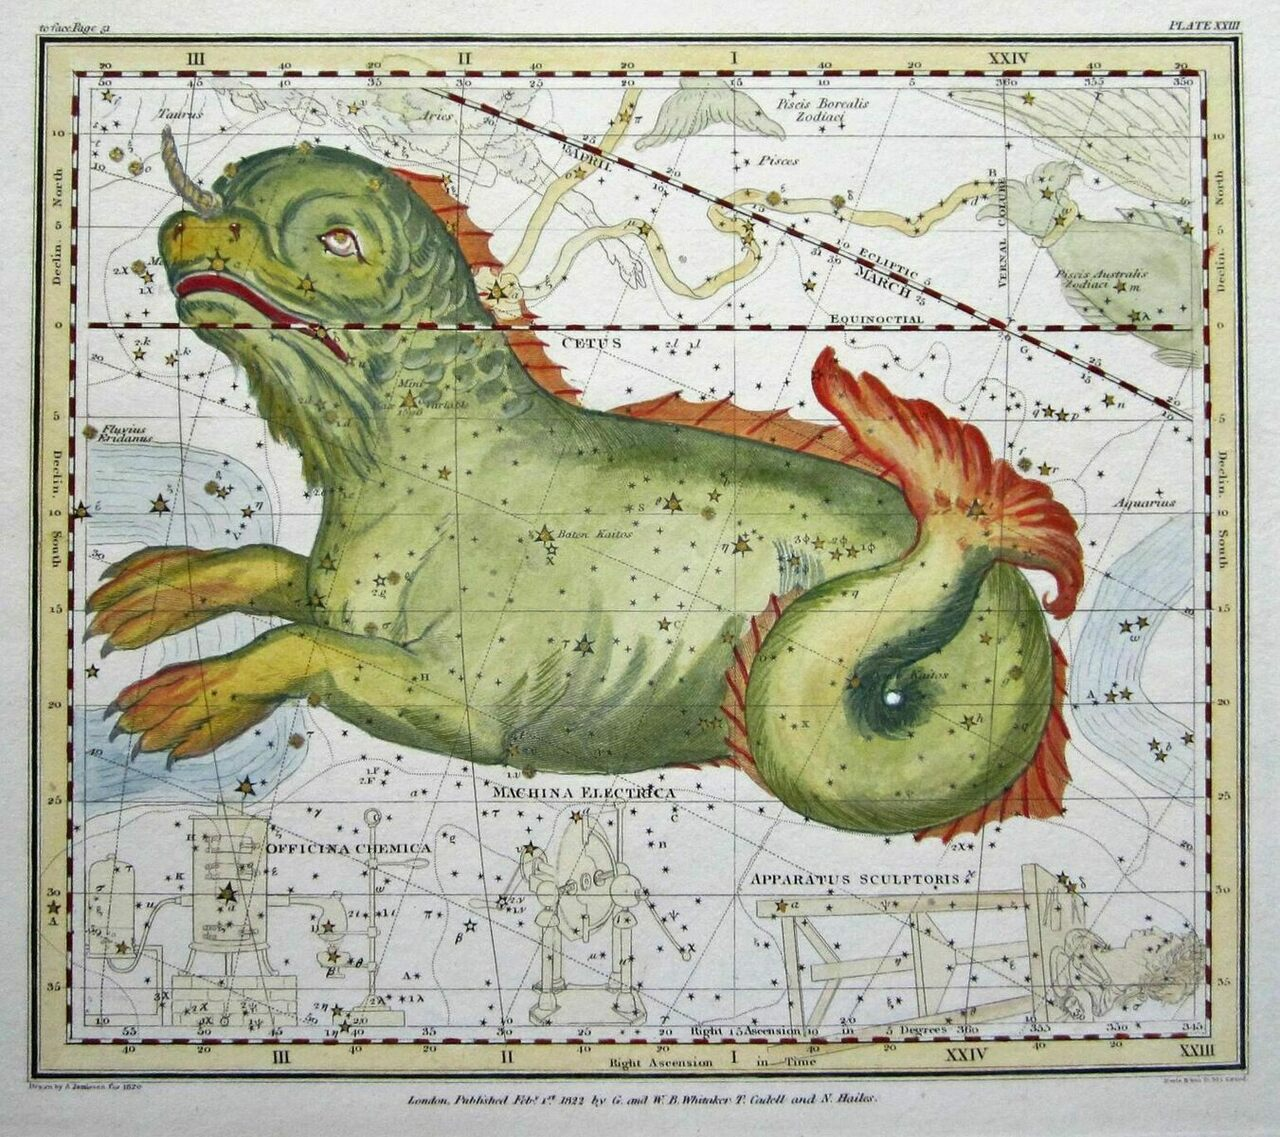 Jamieson's <em>Celestial Atlas</em>, from 1822, included many creatures from Greek mythology, including Cetus, a sea monster.